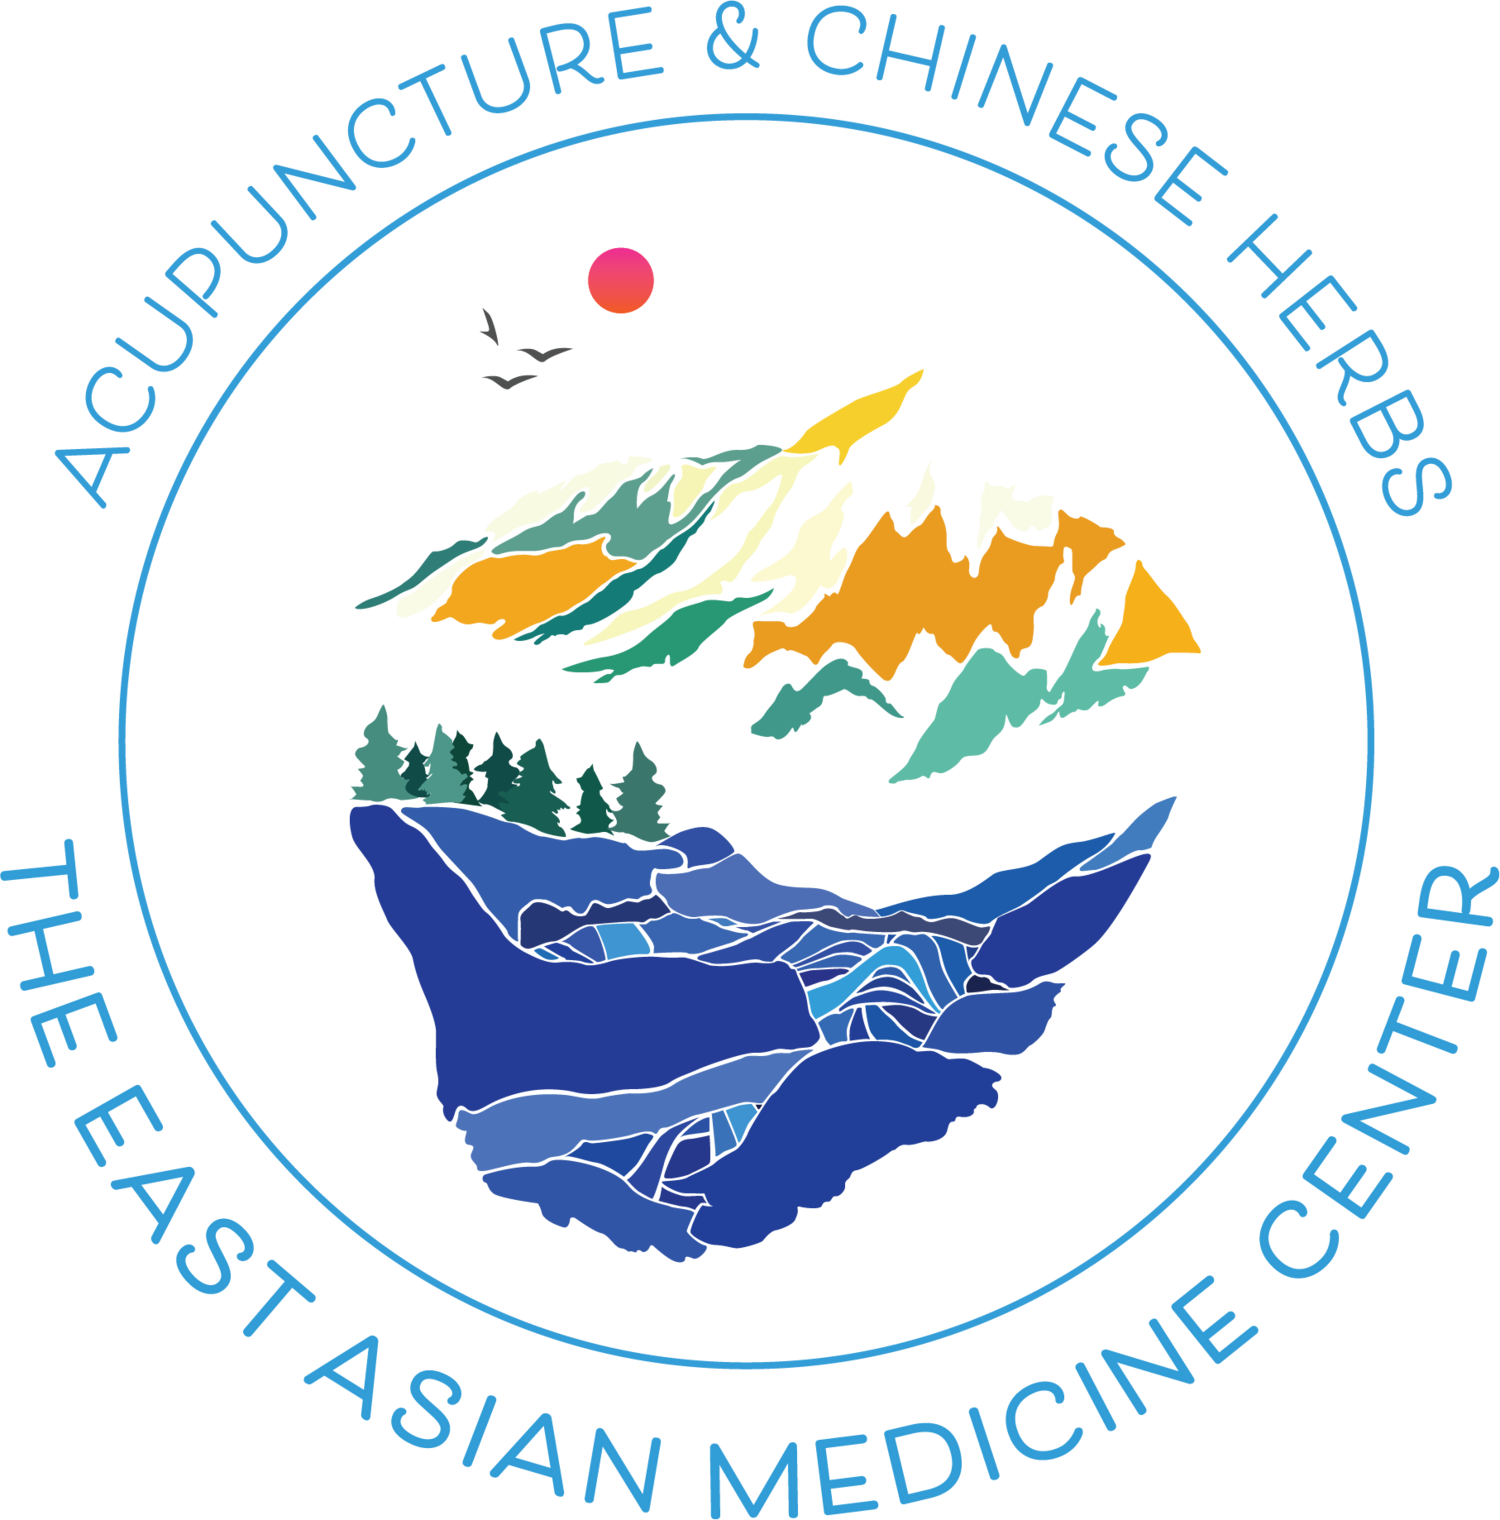 The East Asian Medicine Center